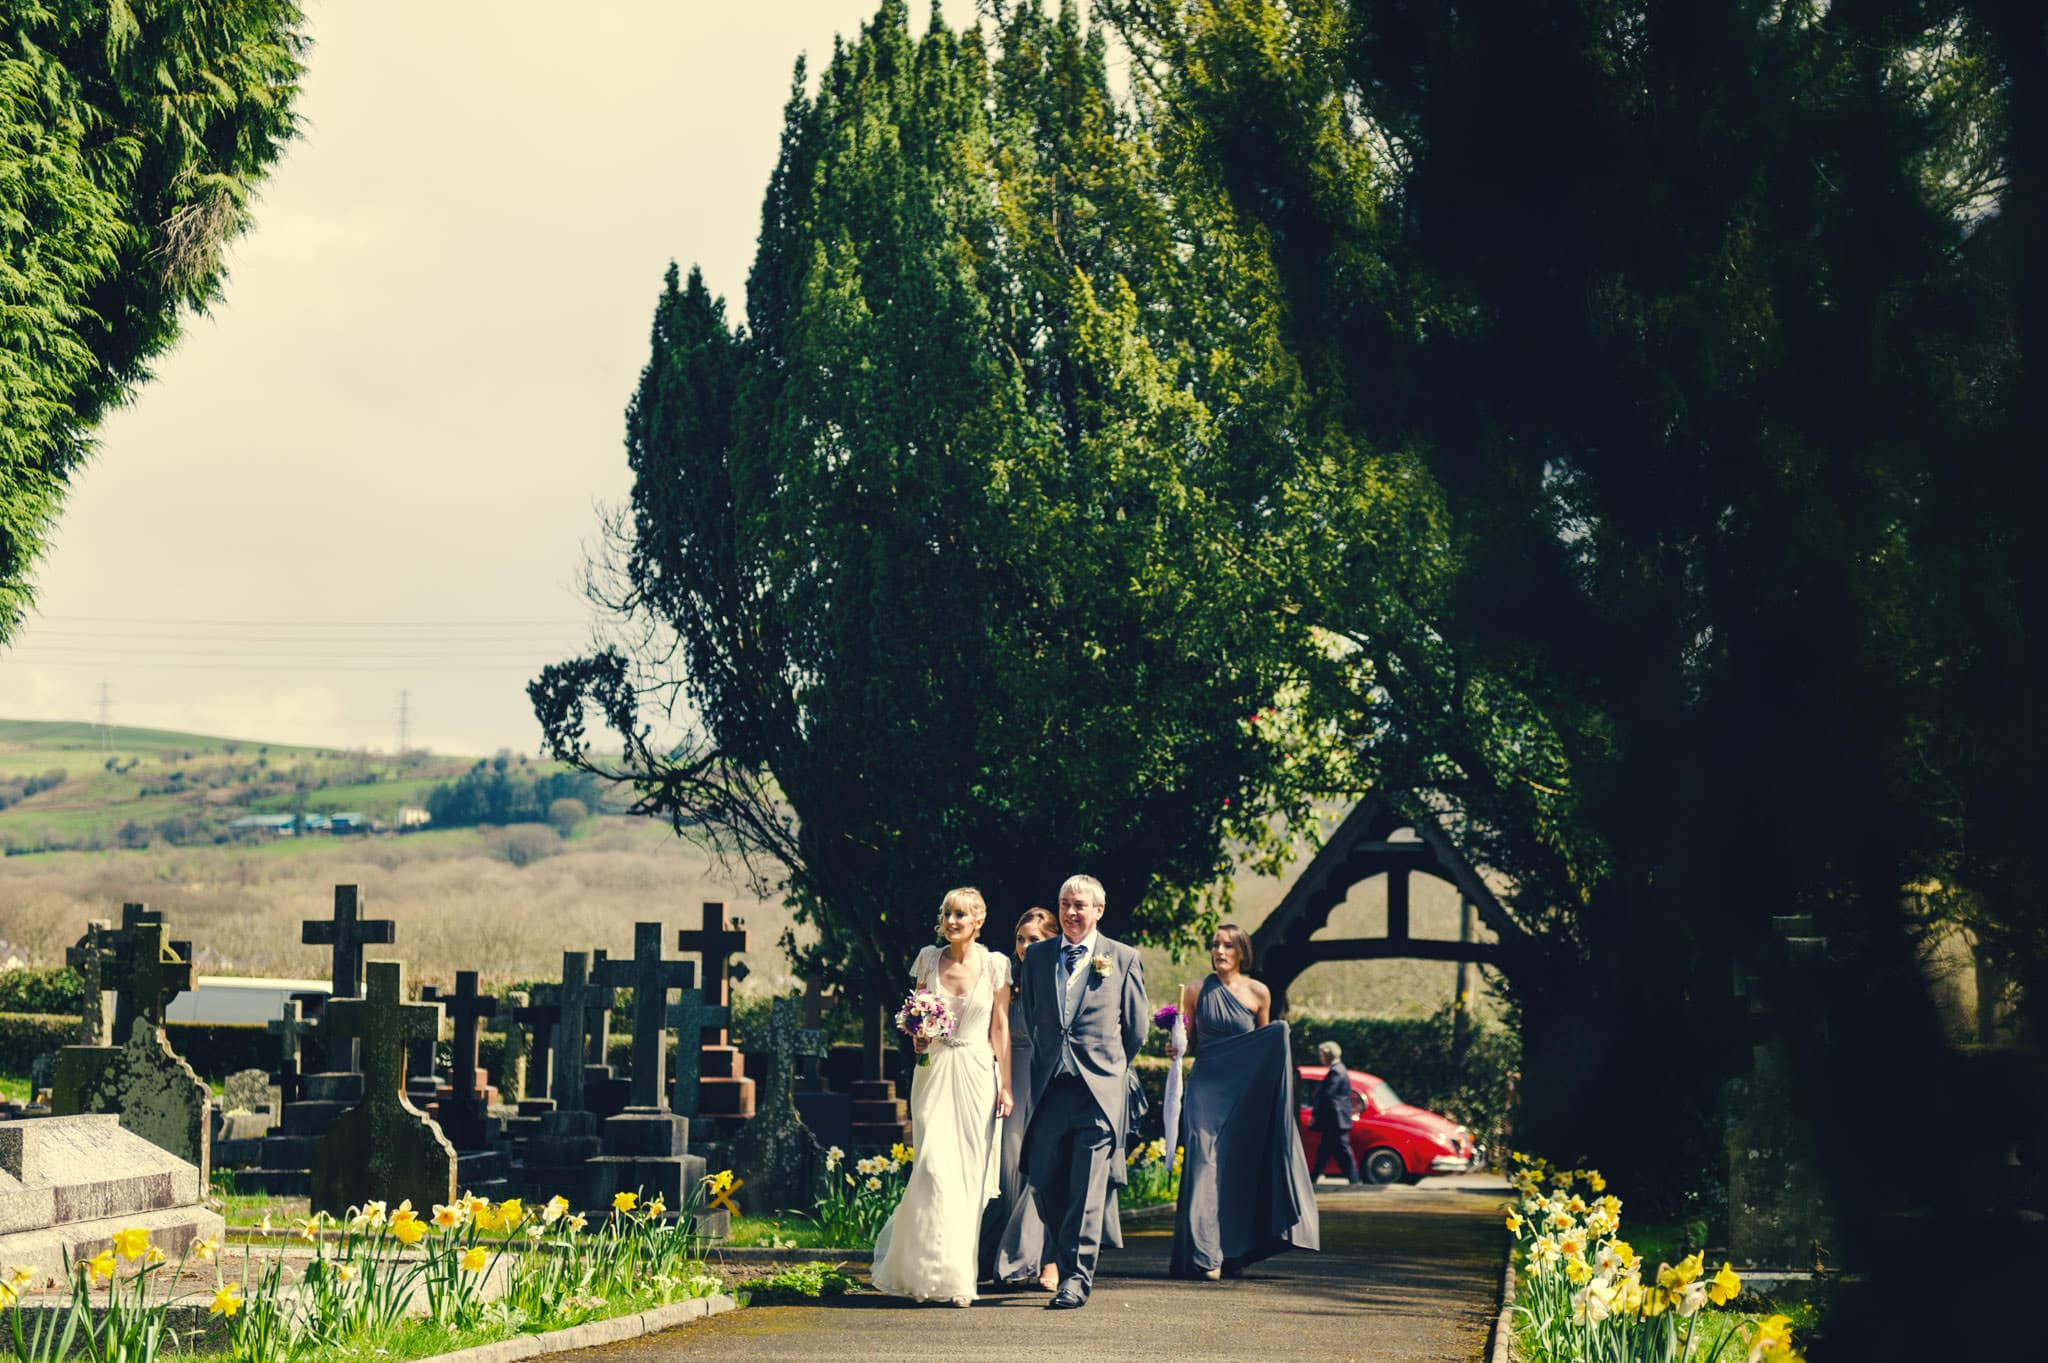 wedding-photography-morgans-hotel-swansea-south-wales (13)